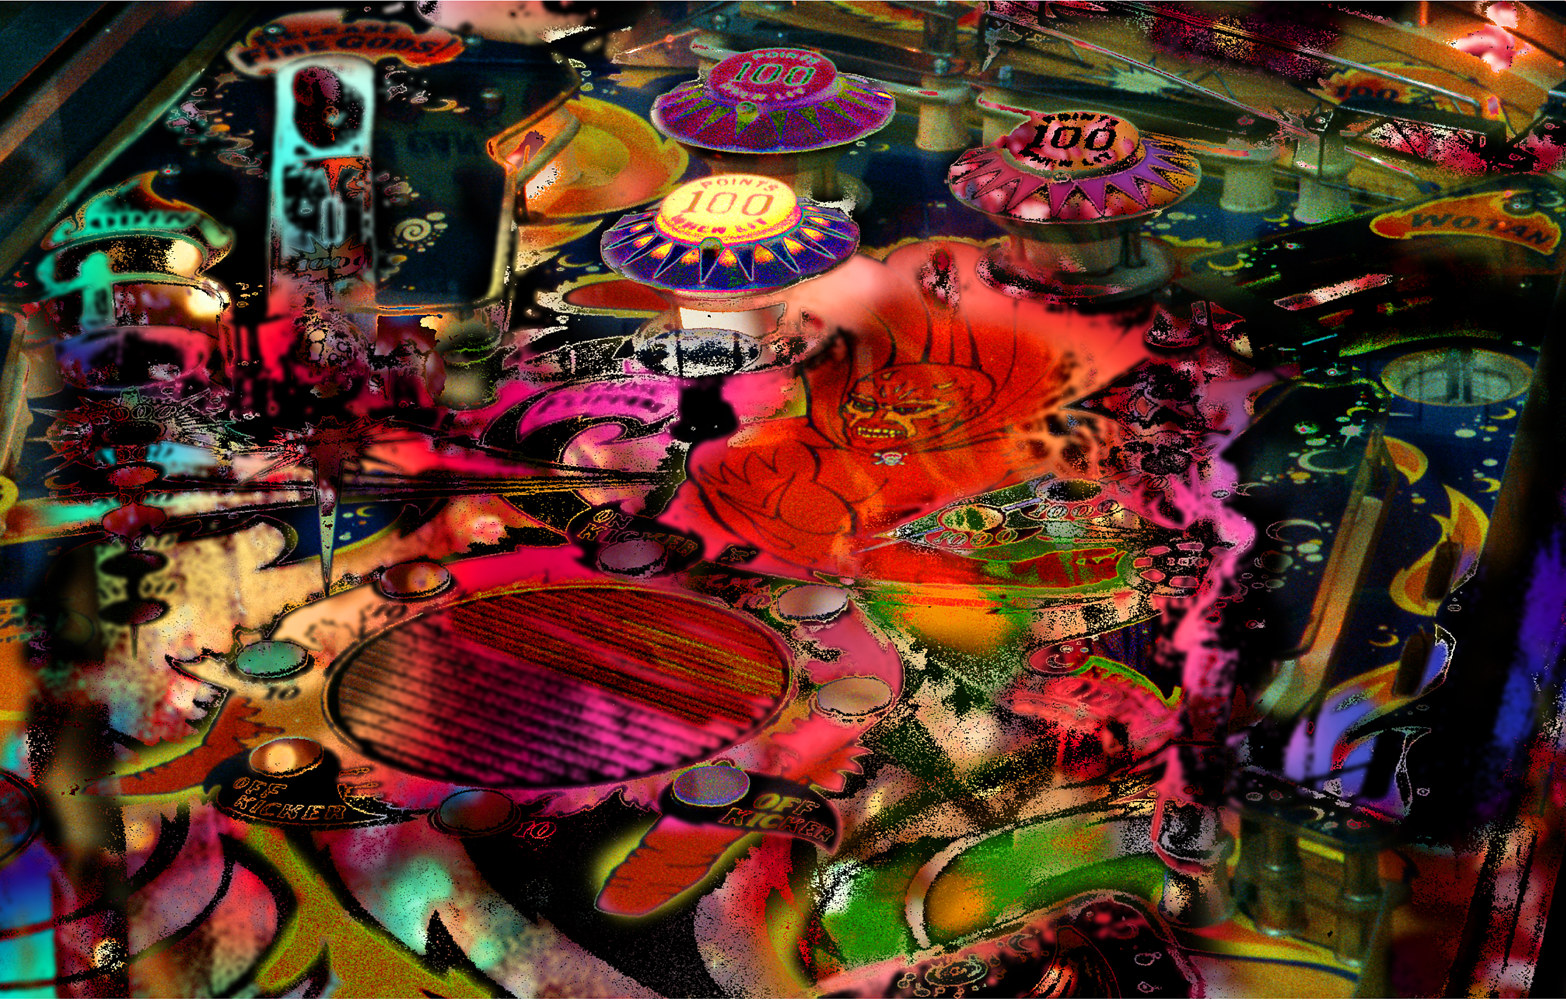 Photography Pinball Series #6 by Kathleen Gross